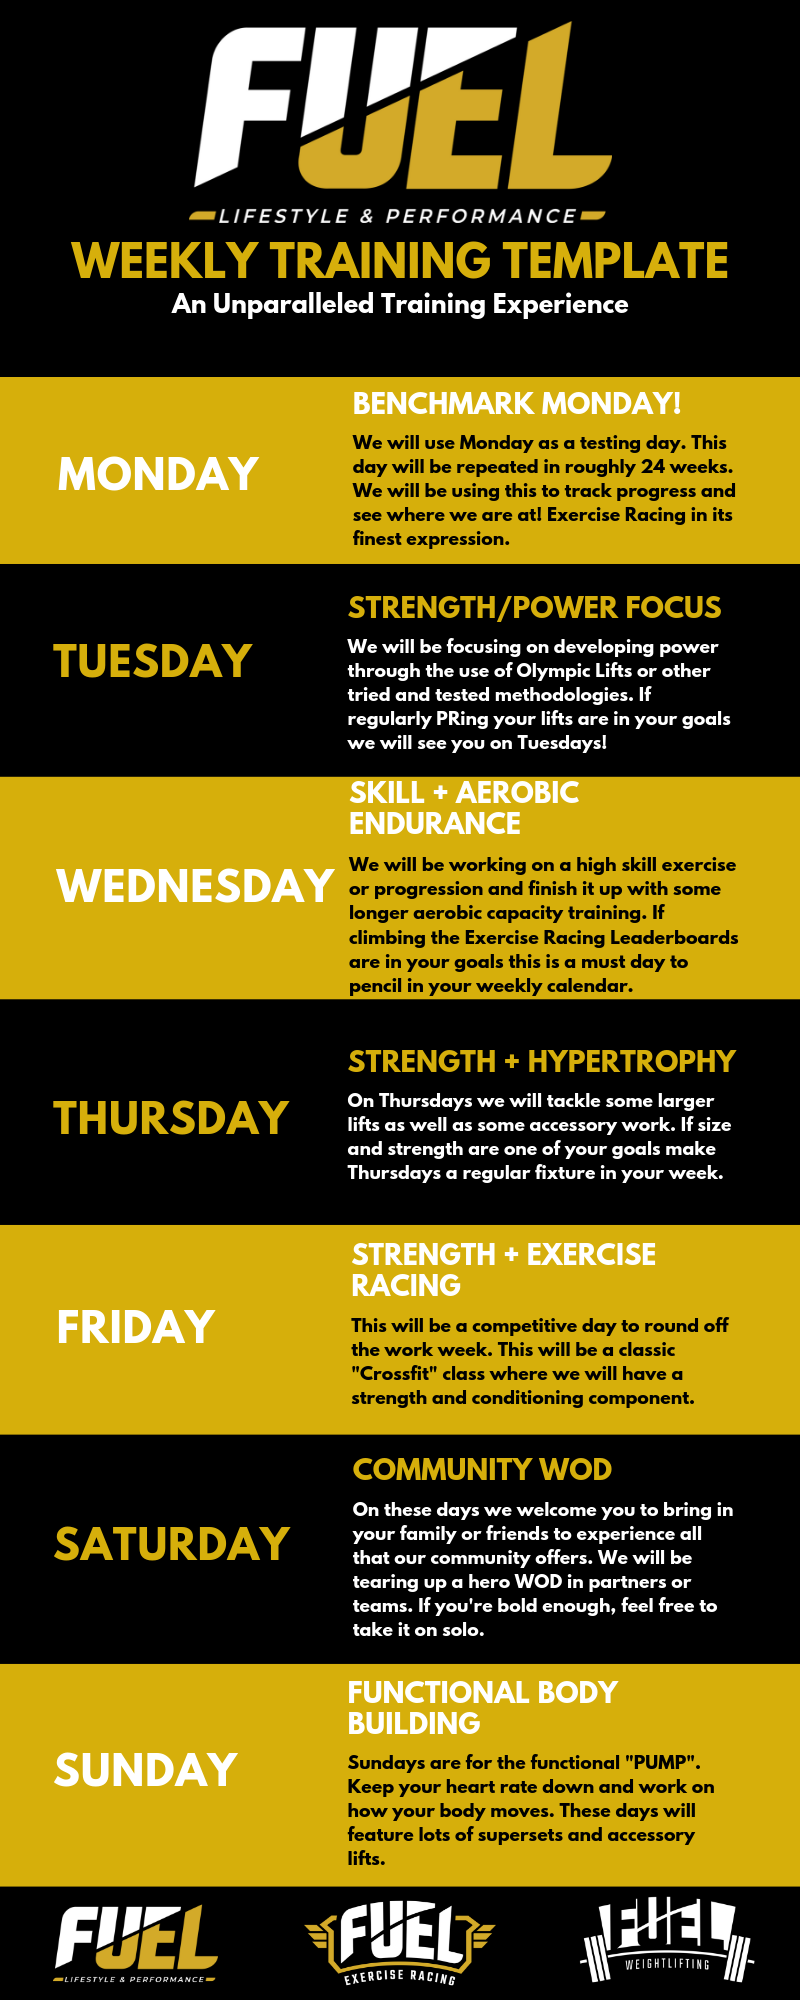 FUEL Weekly Training Template (1).png